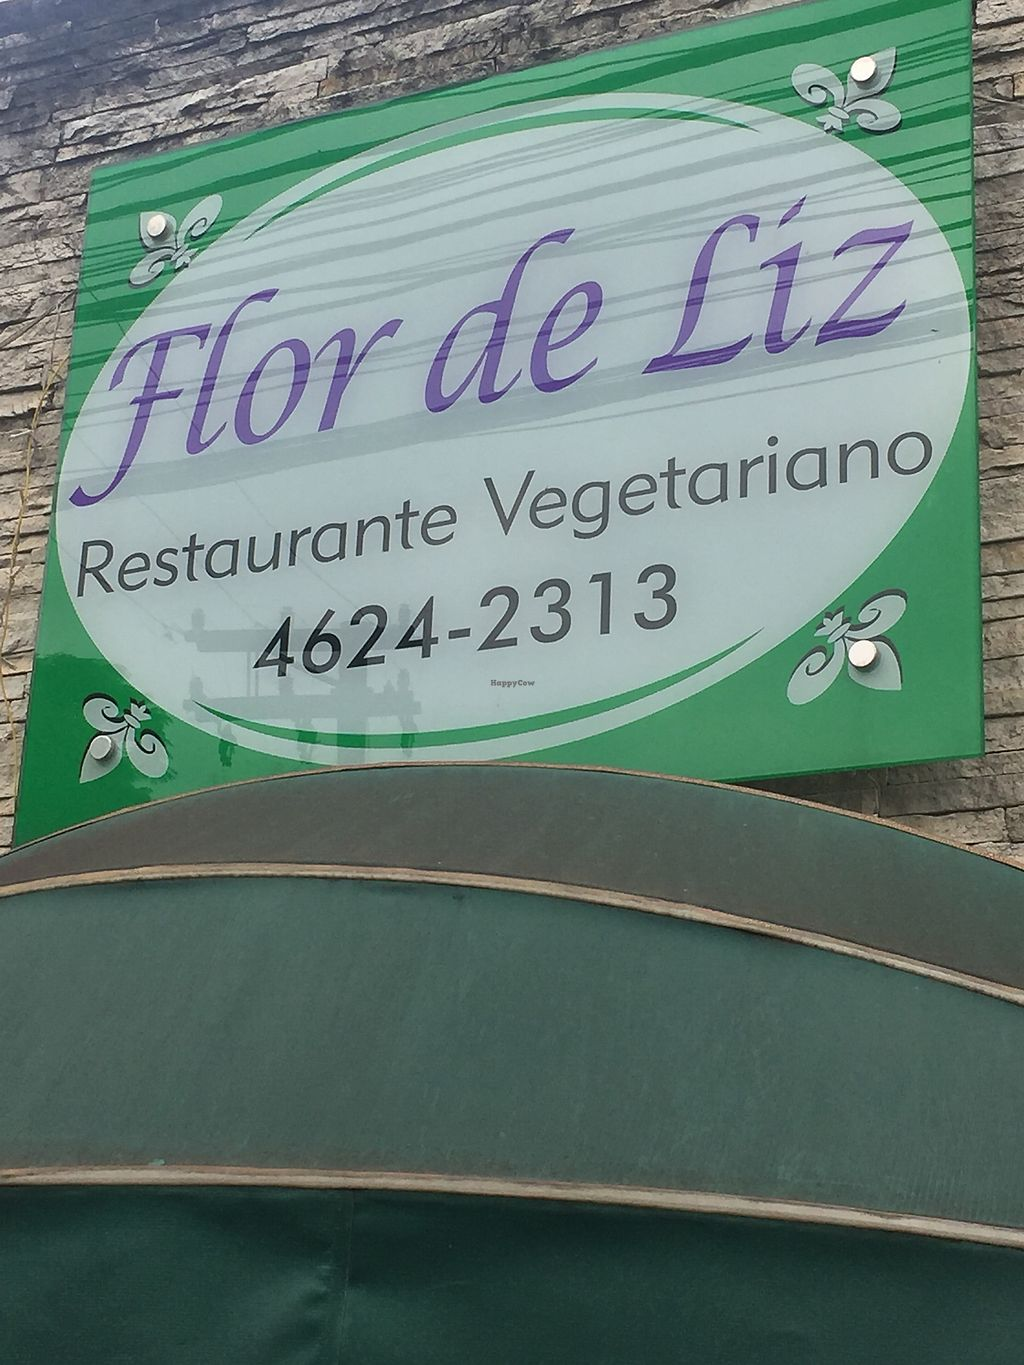 """Photo of Flor de Liz  by <a href=""""/members/profile/Vegeiko"""">Vegeiko</a> <br/>Outside sign board <br/> November 24, 2017  - <a href='/contact/abuse/image/63067/328600'>Report</a>"""